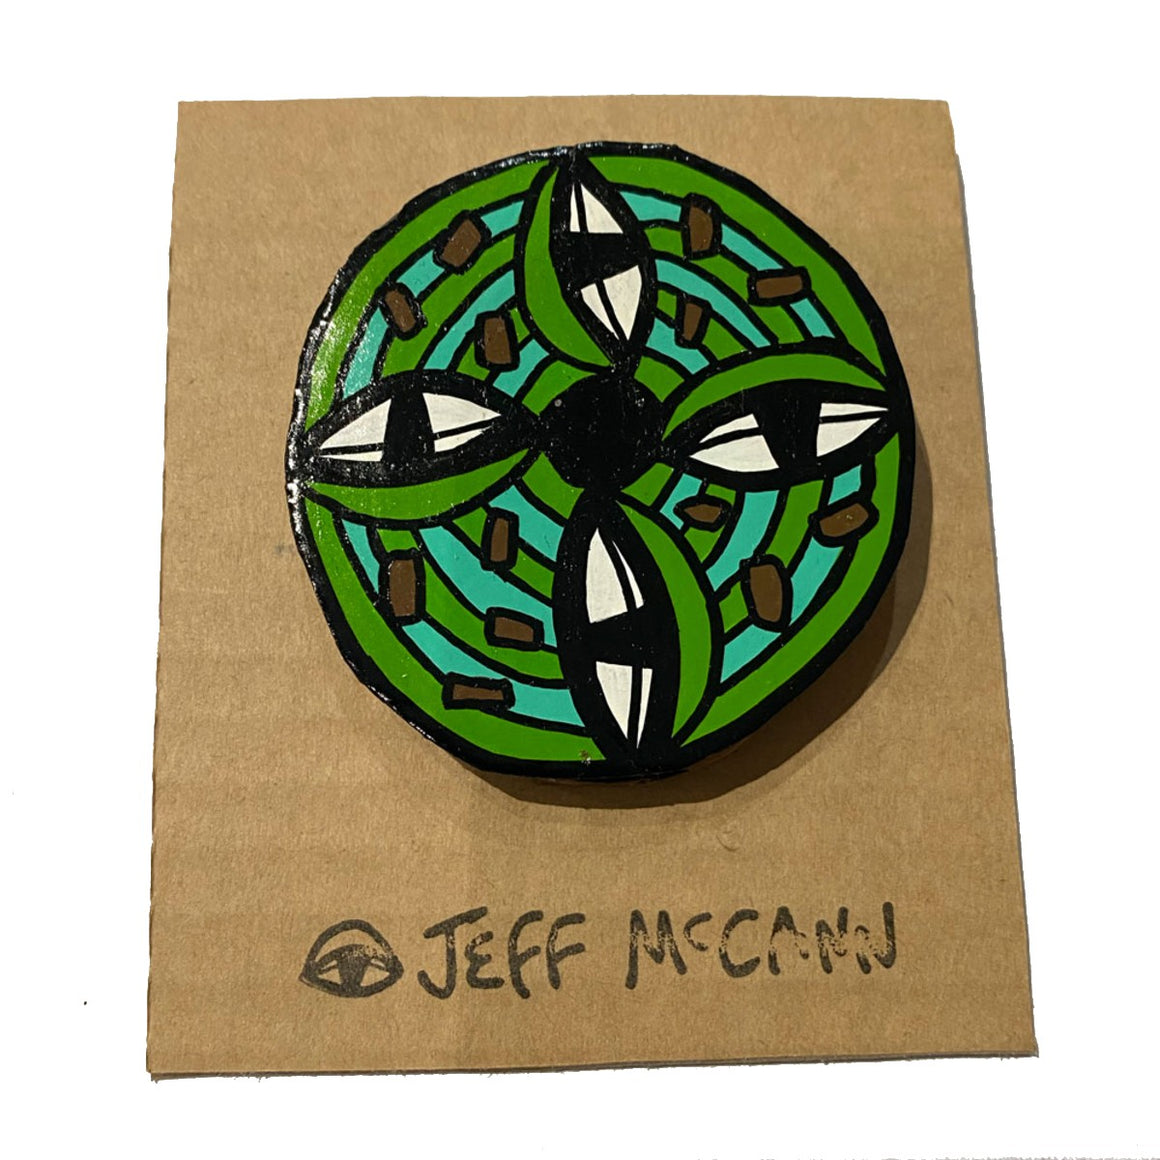 a Large Jeff McCann Brooch featuring  an green disc, eyes and cactus like shapes in green, teal and brown.